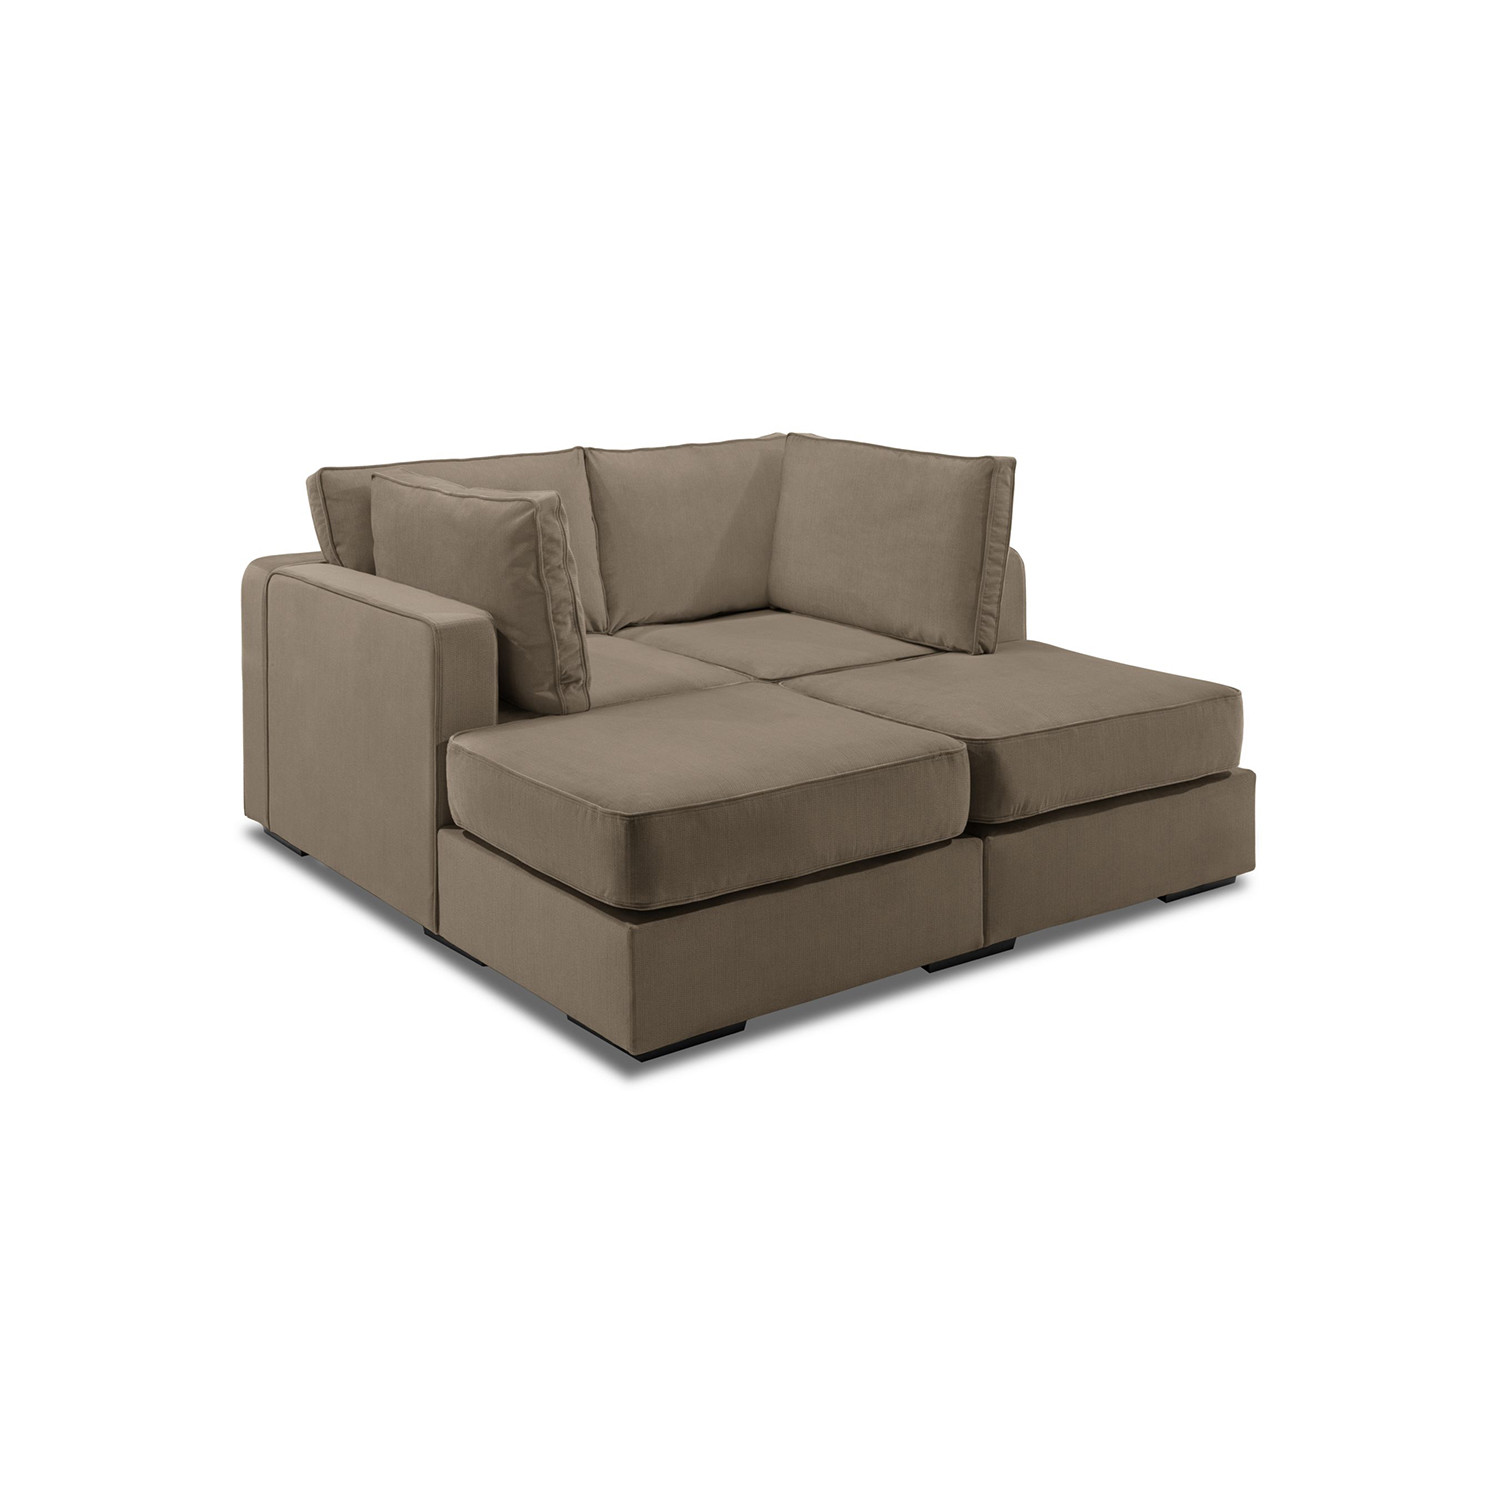 5 Series Sactionals // M Lounger (Taupe)